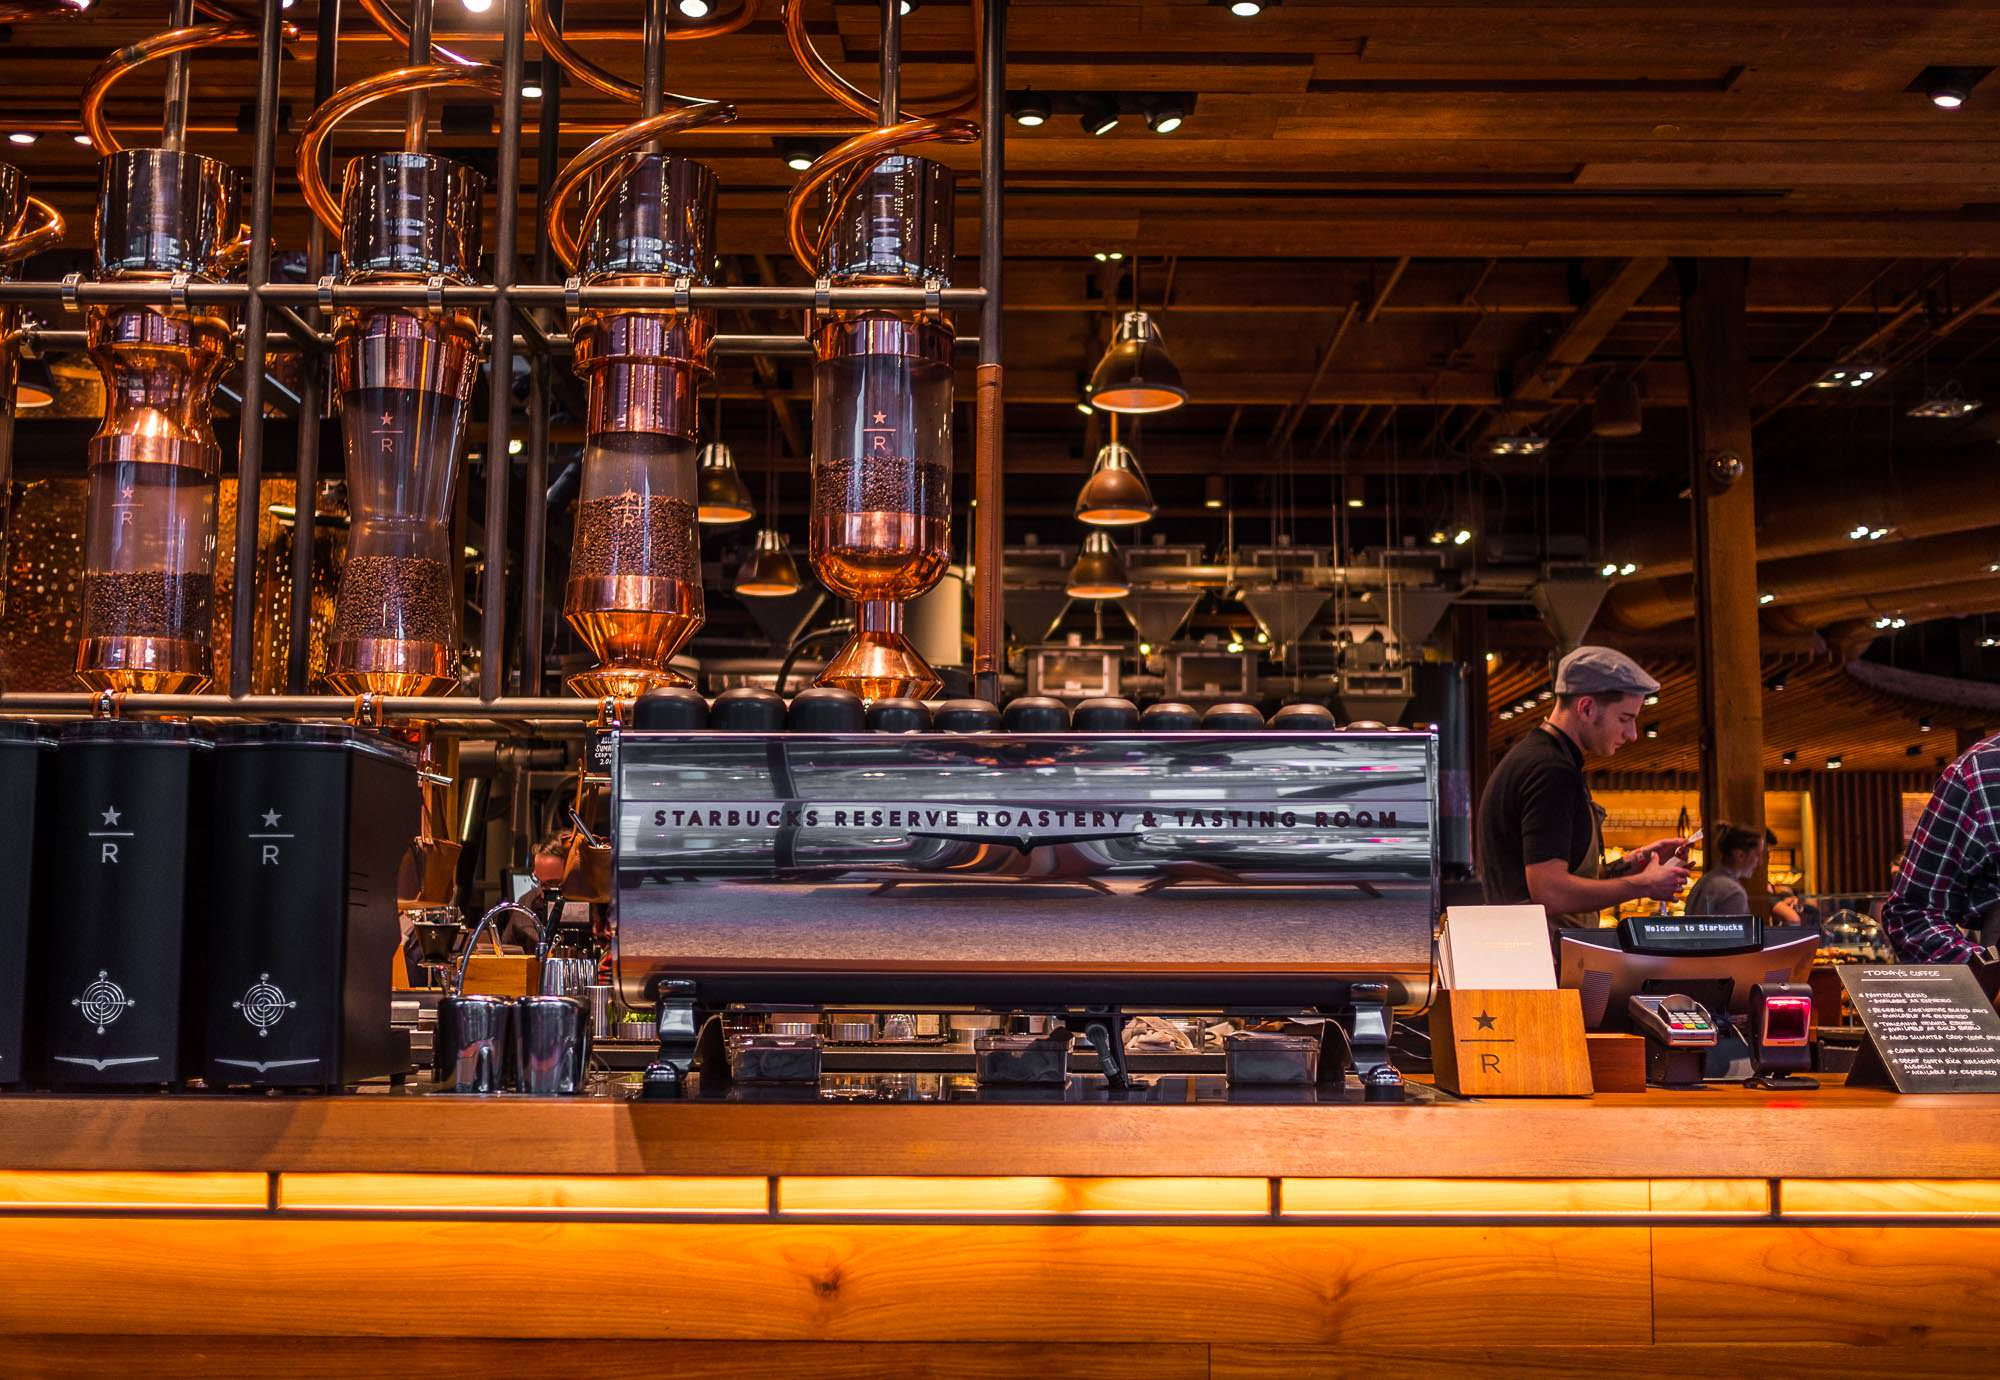 MYBELONGING-SEATTLE-CITY-GUIDE-UBER-X-TRAVEL-PHOTOGRAPHY-STARBUCKS-ROASTERY-ORFEO-1.jpg